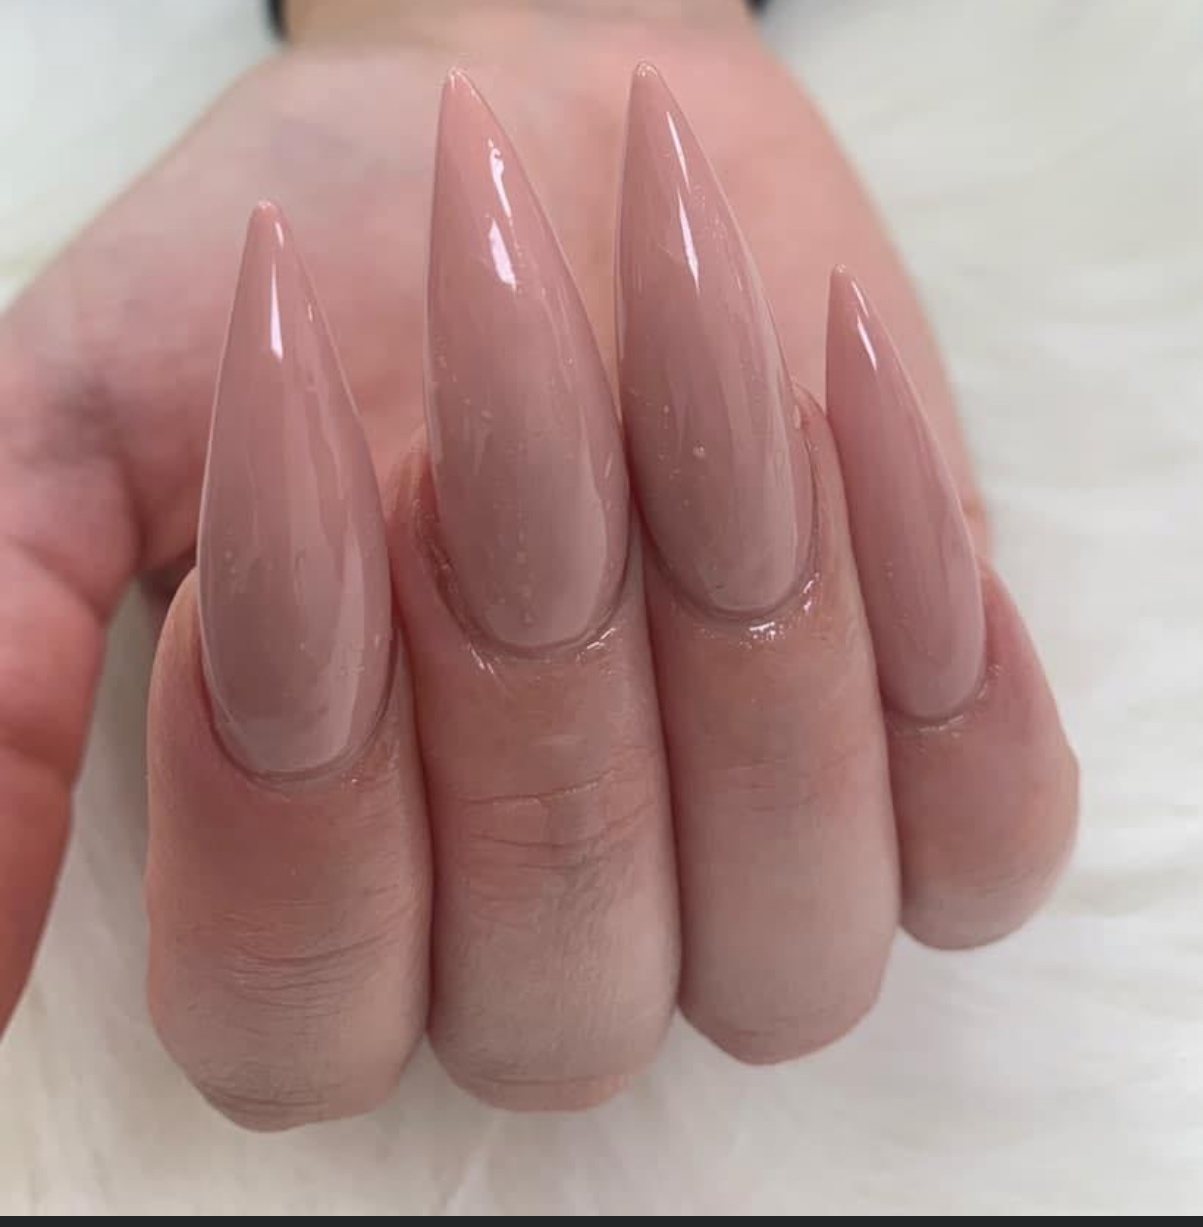 JOLYSH MARVELLOUS NAILS